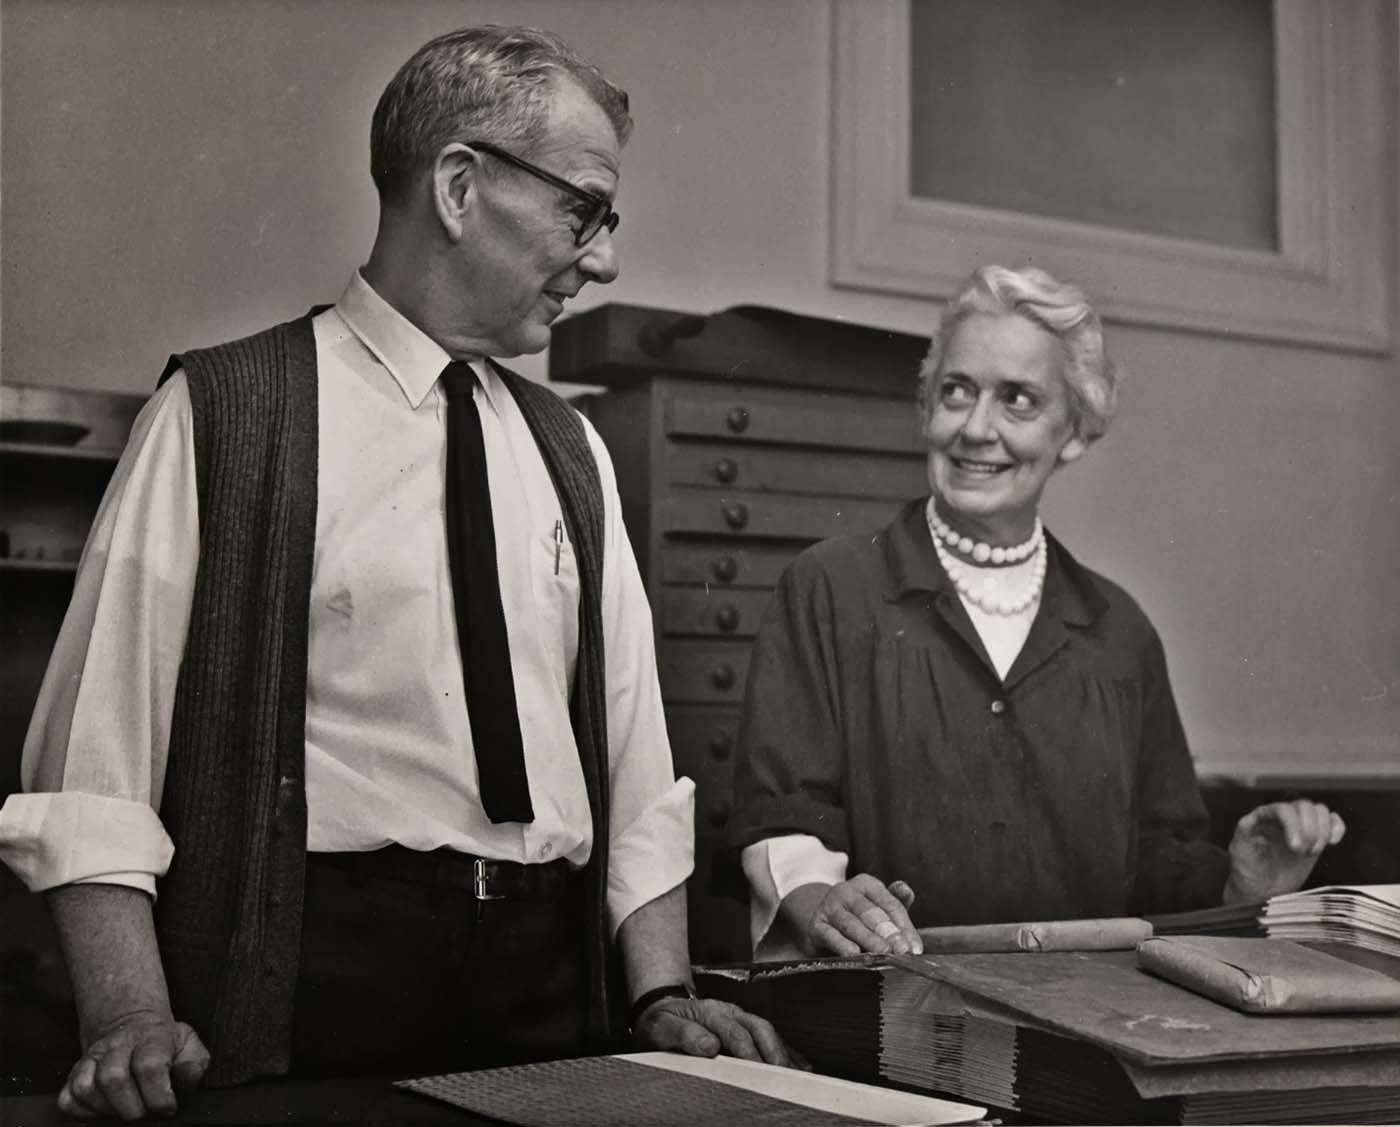 Jane and Robert Grabhorn [n.d.] (Book Arts & Special Collections, San Francisco Public Library)